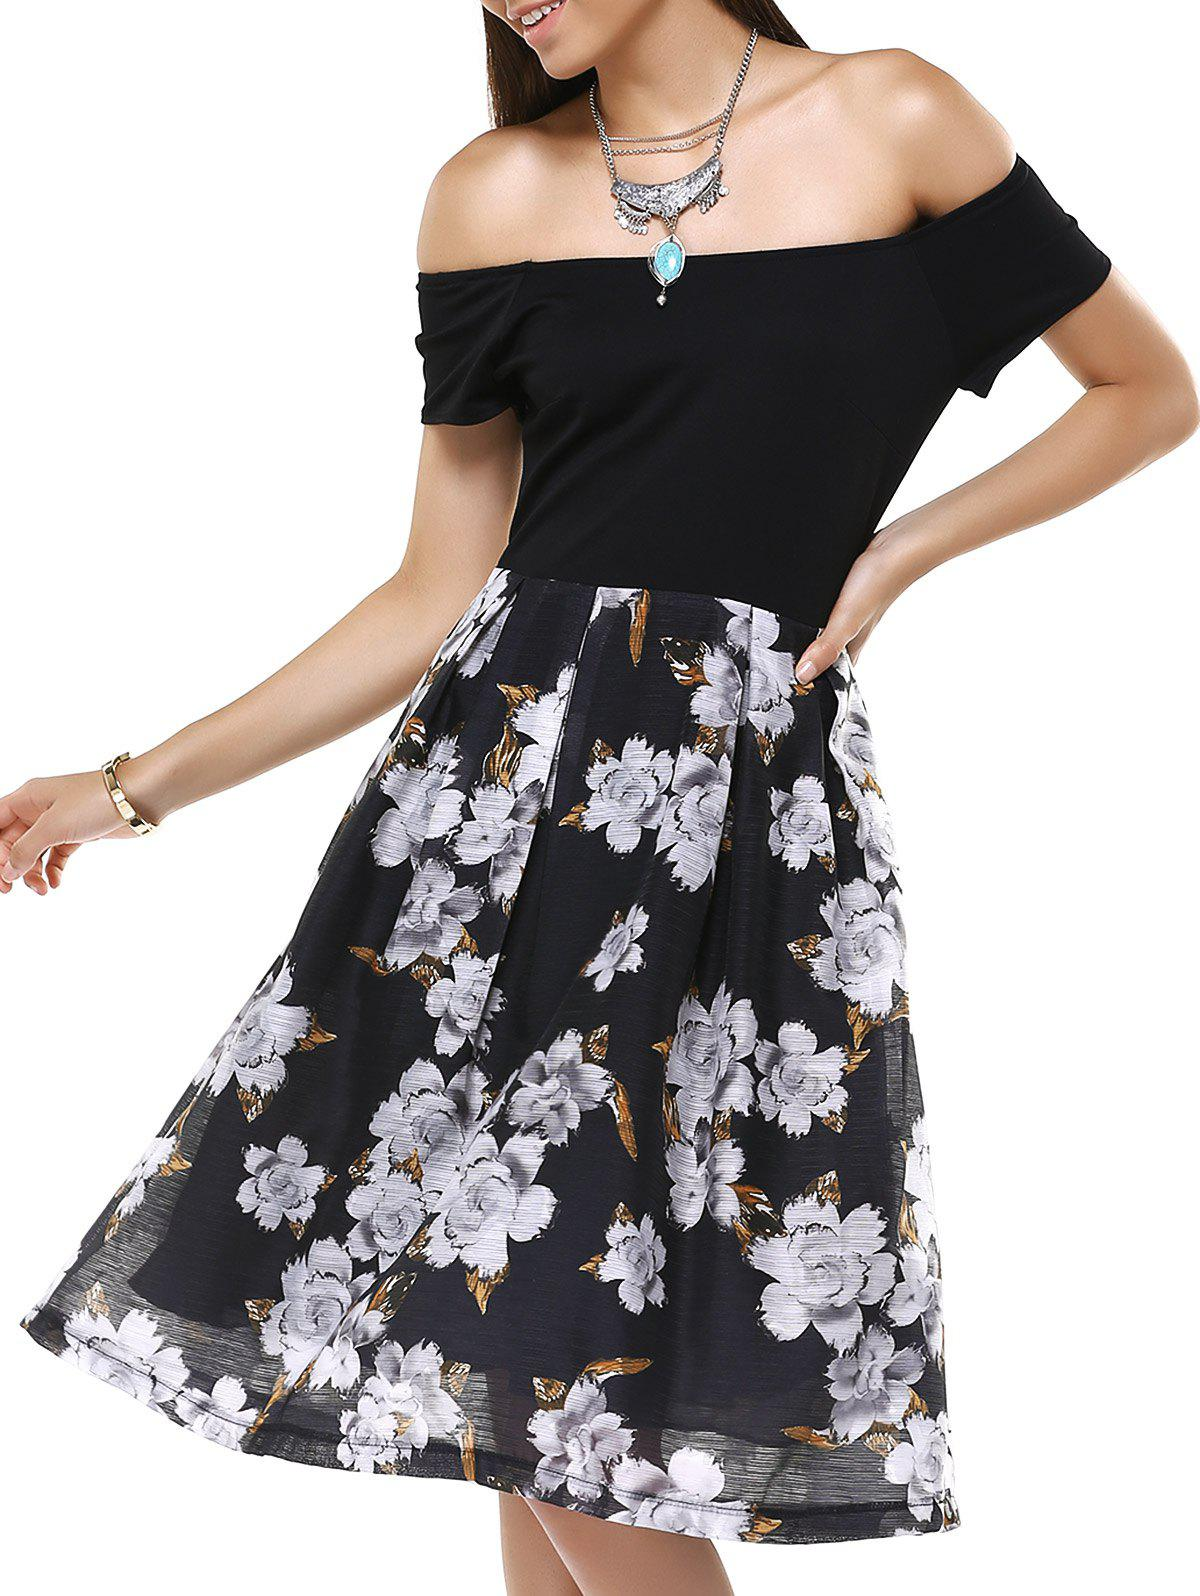 Vintage Off-The-Shoulder Floral Pleated Dress For Women - BLACK 5XL